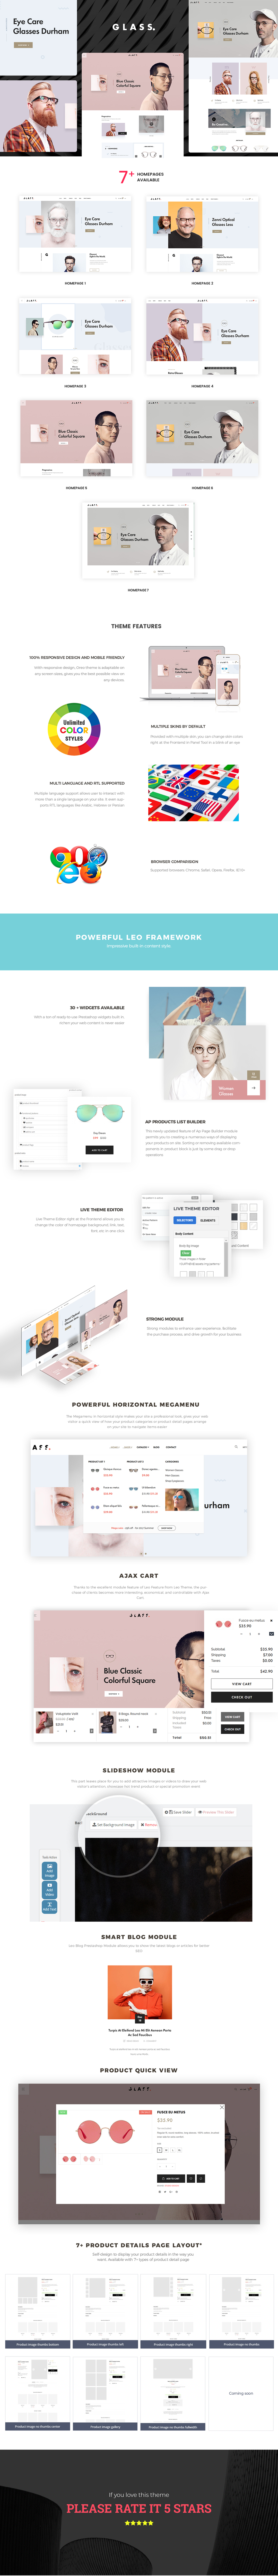 Glasses - Minimal Trendy Fashion Prestashop Theme